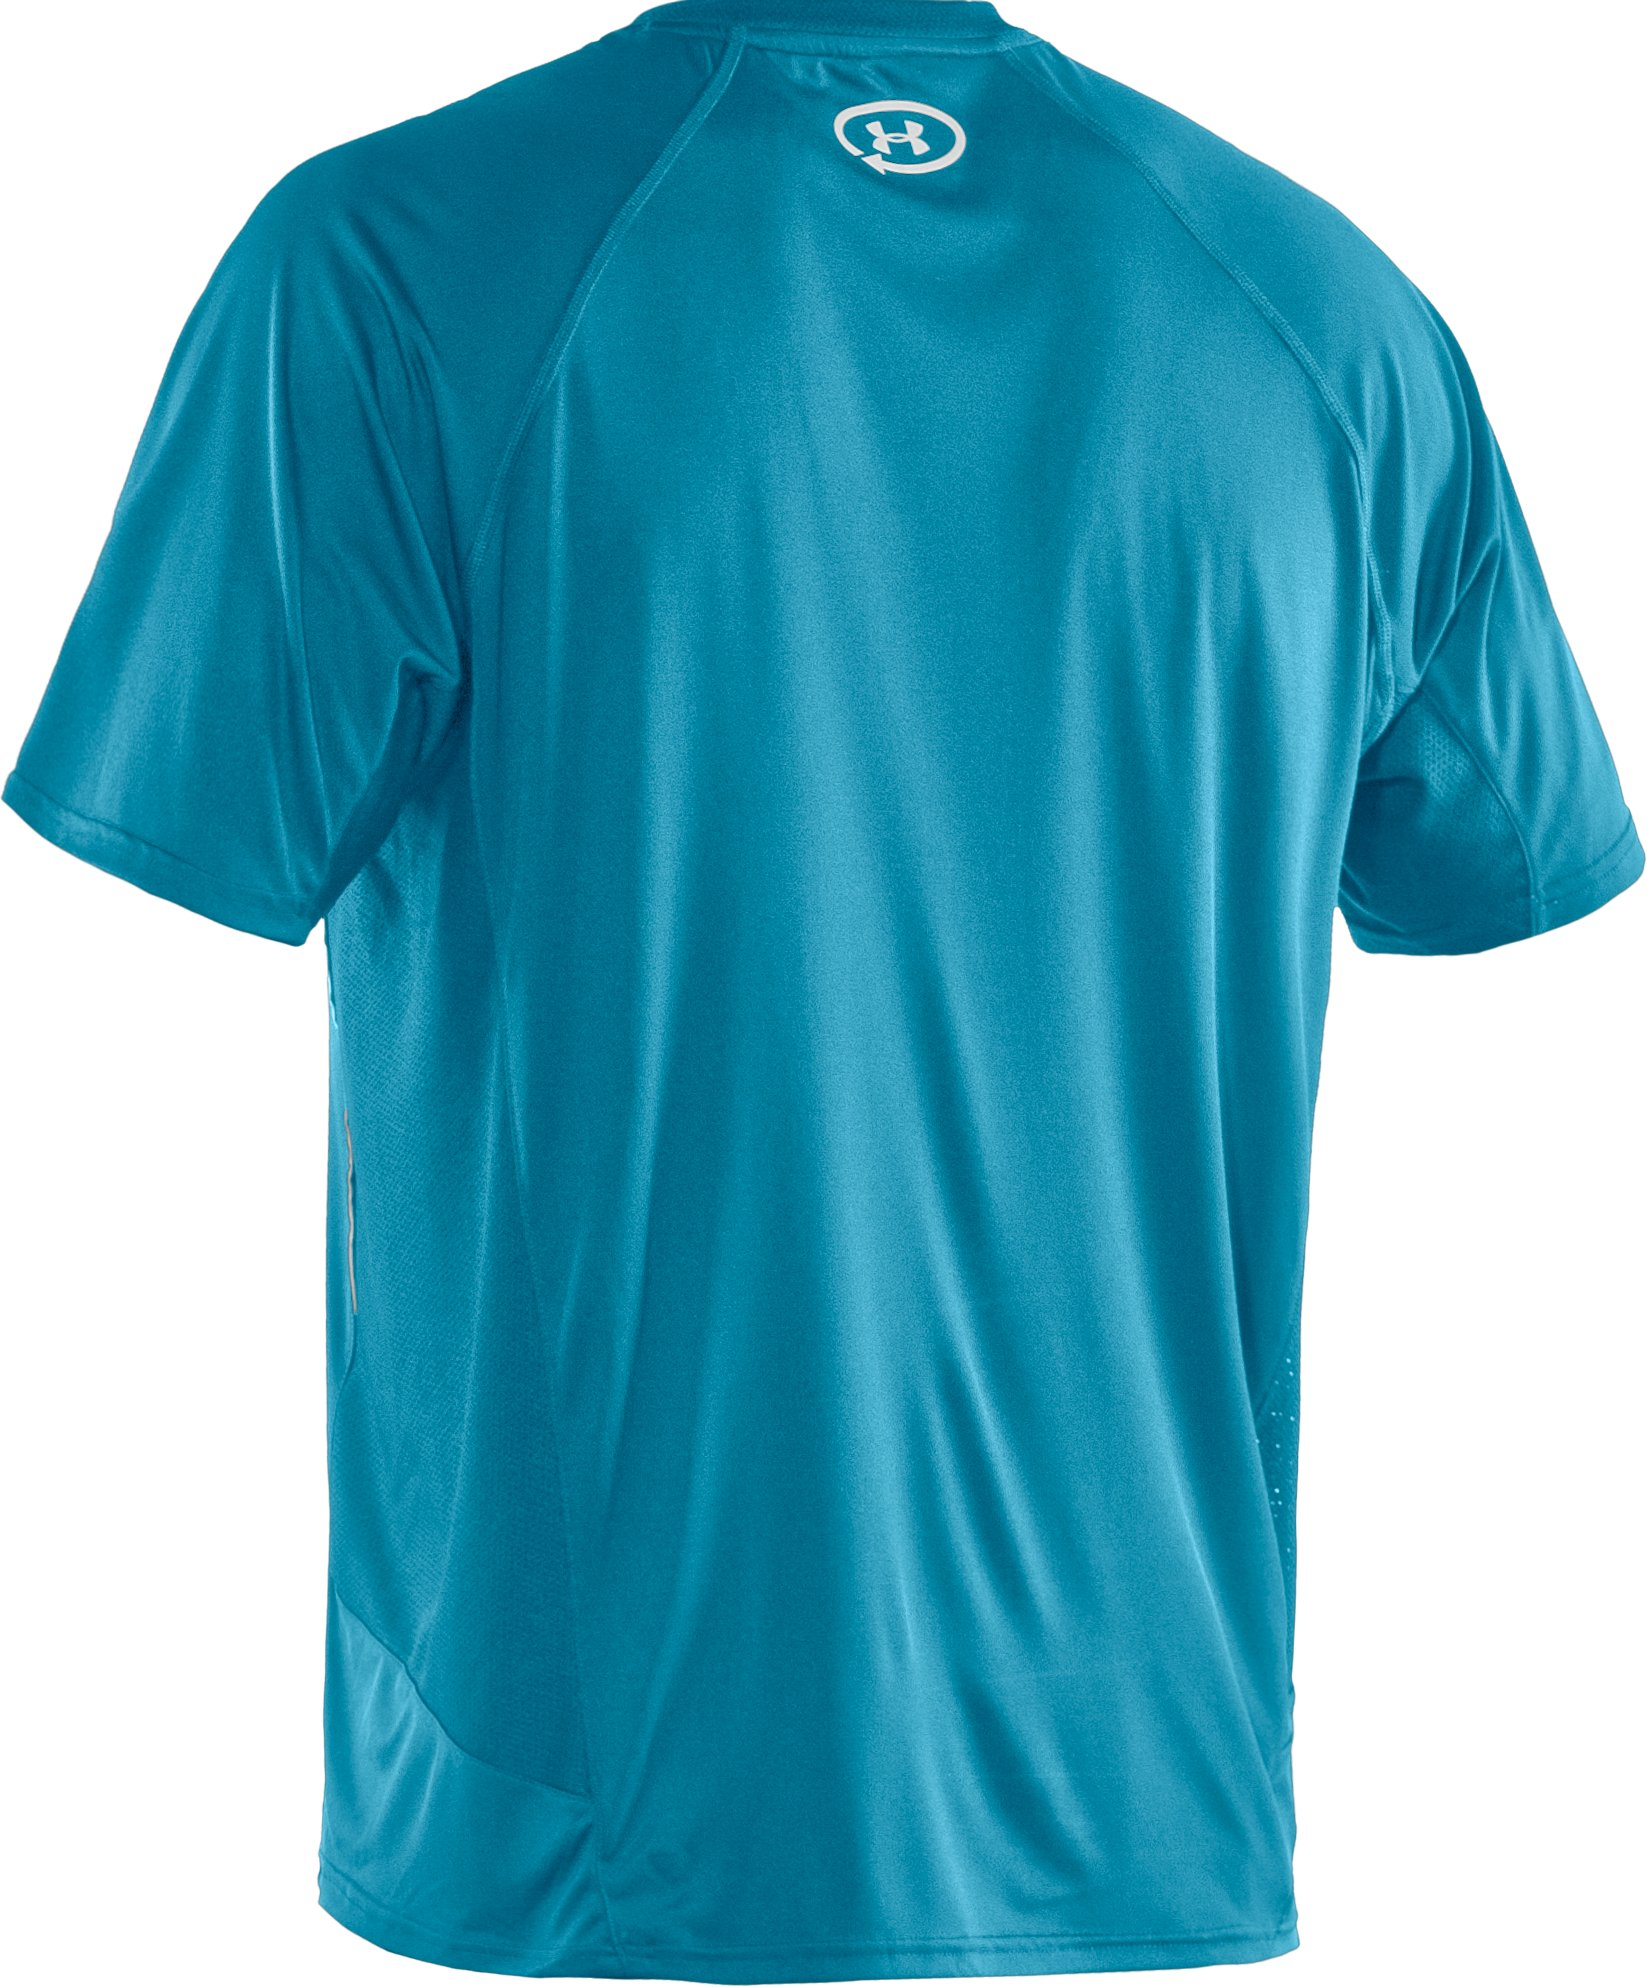 Men's Draft UA Catalyst Short Sleeve T-Shirt, Break